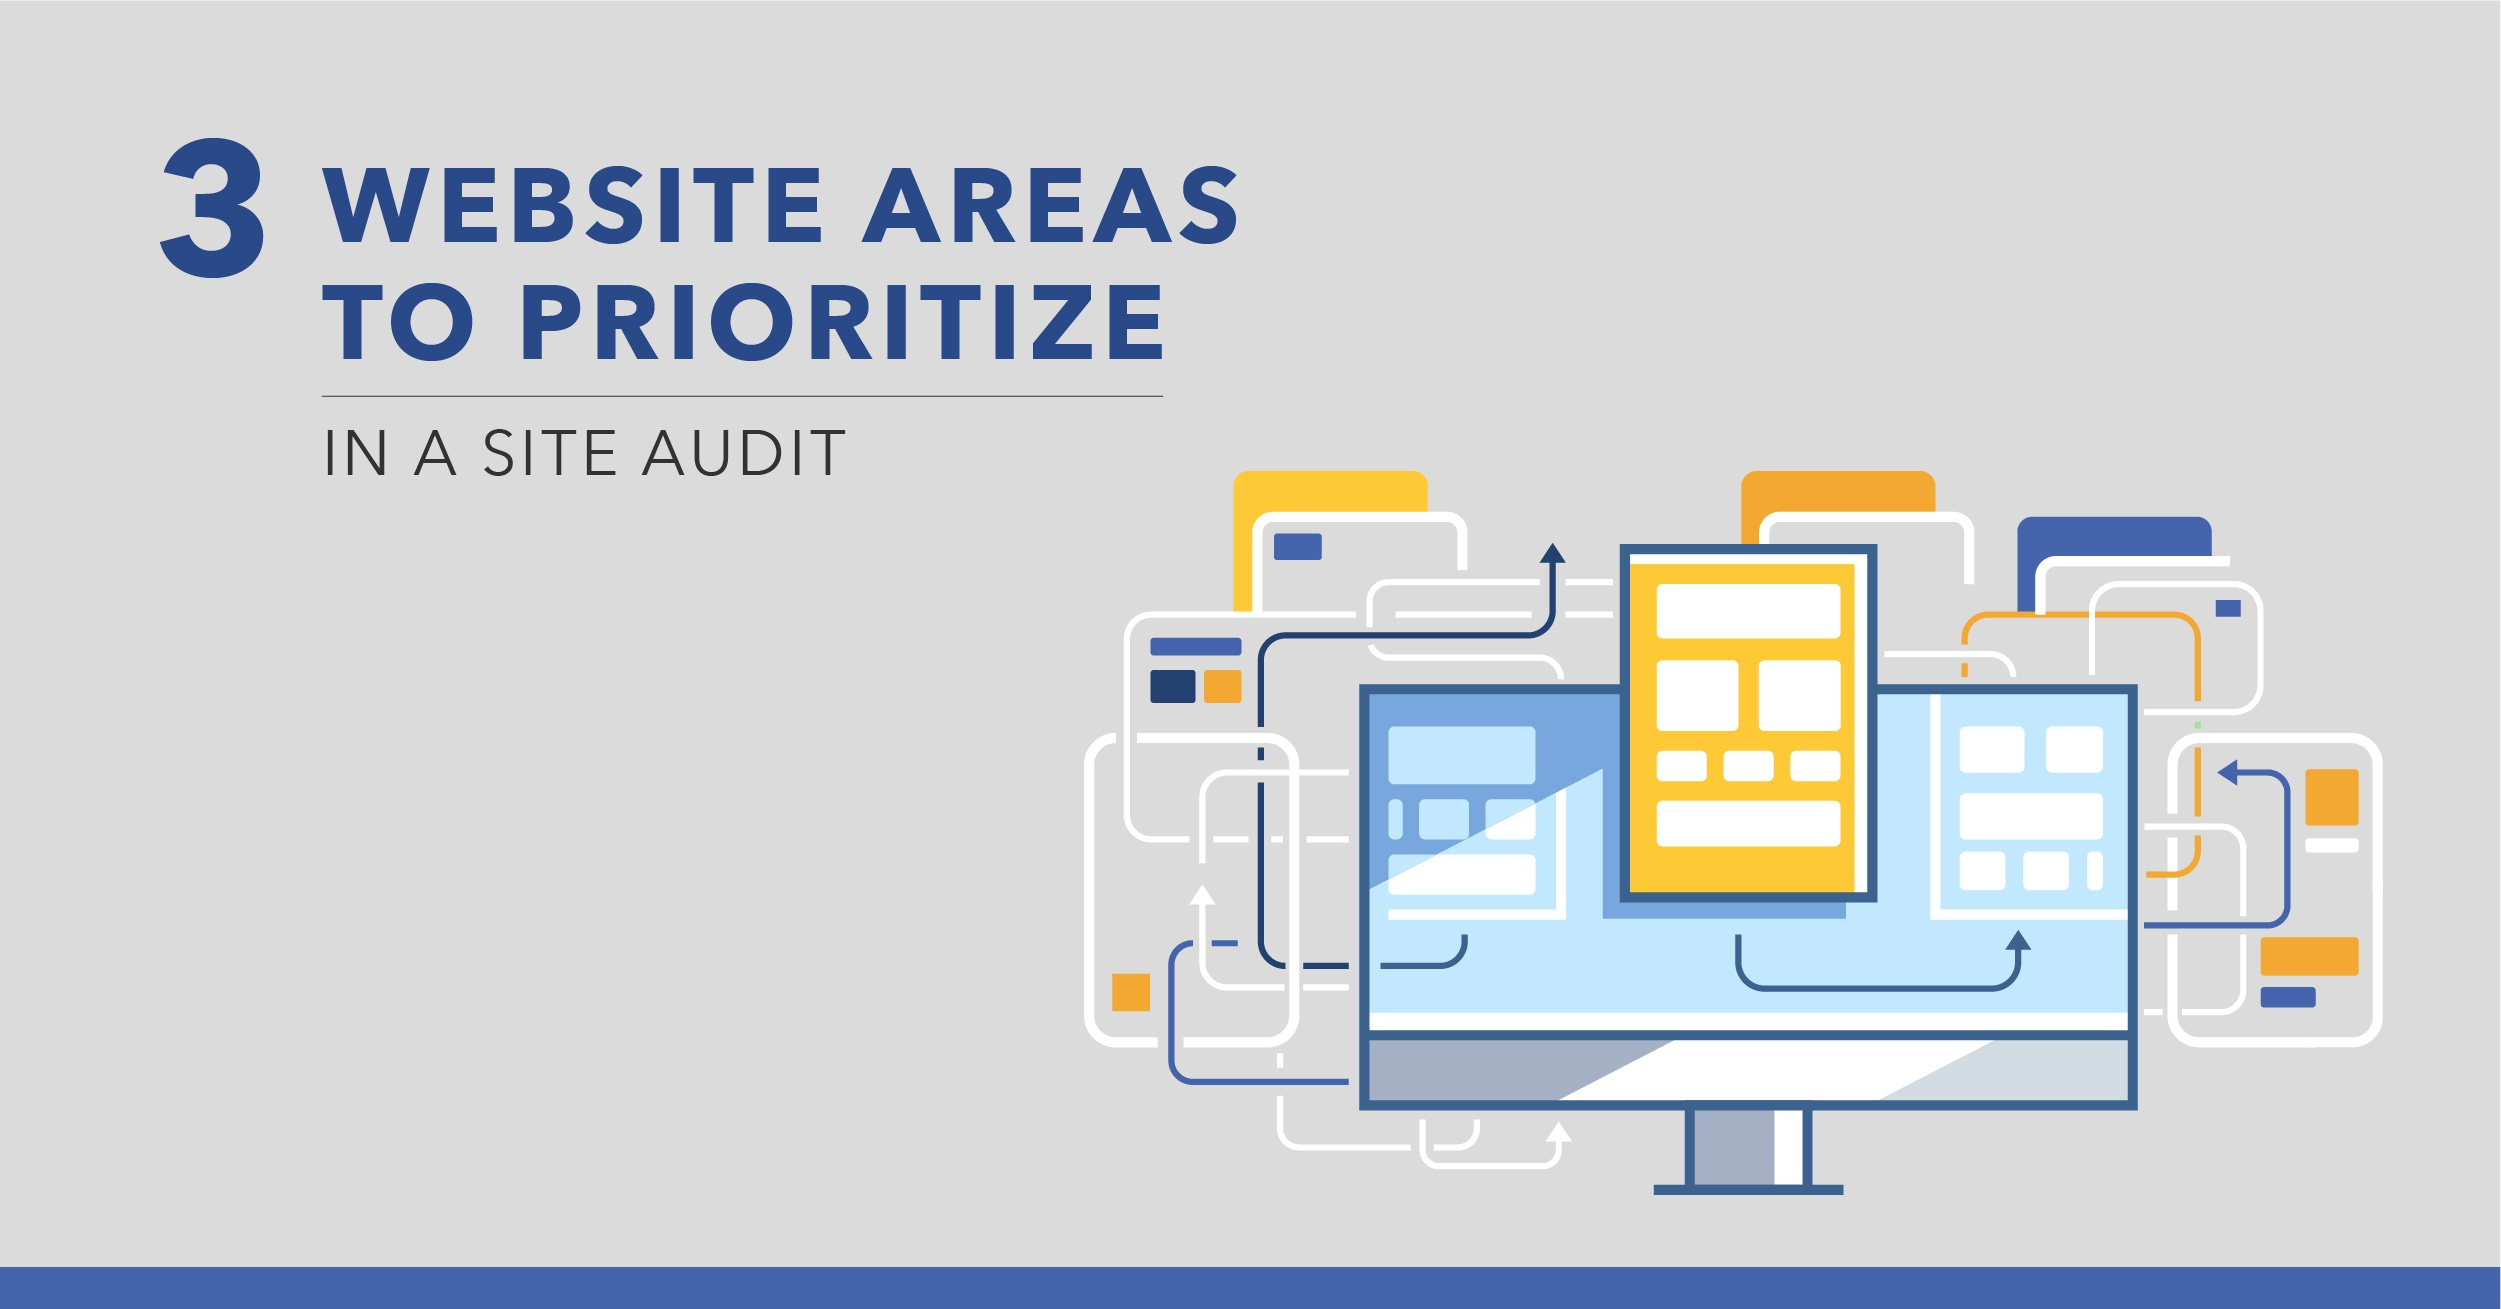 3 Website Areas to Prioritize in a Site Audit - Featured Image